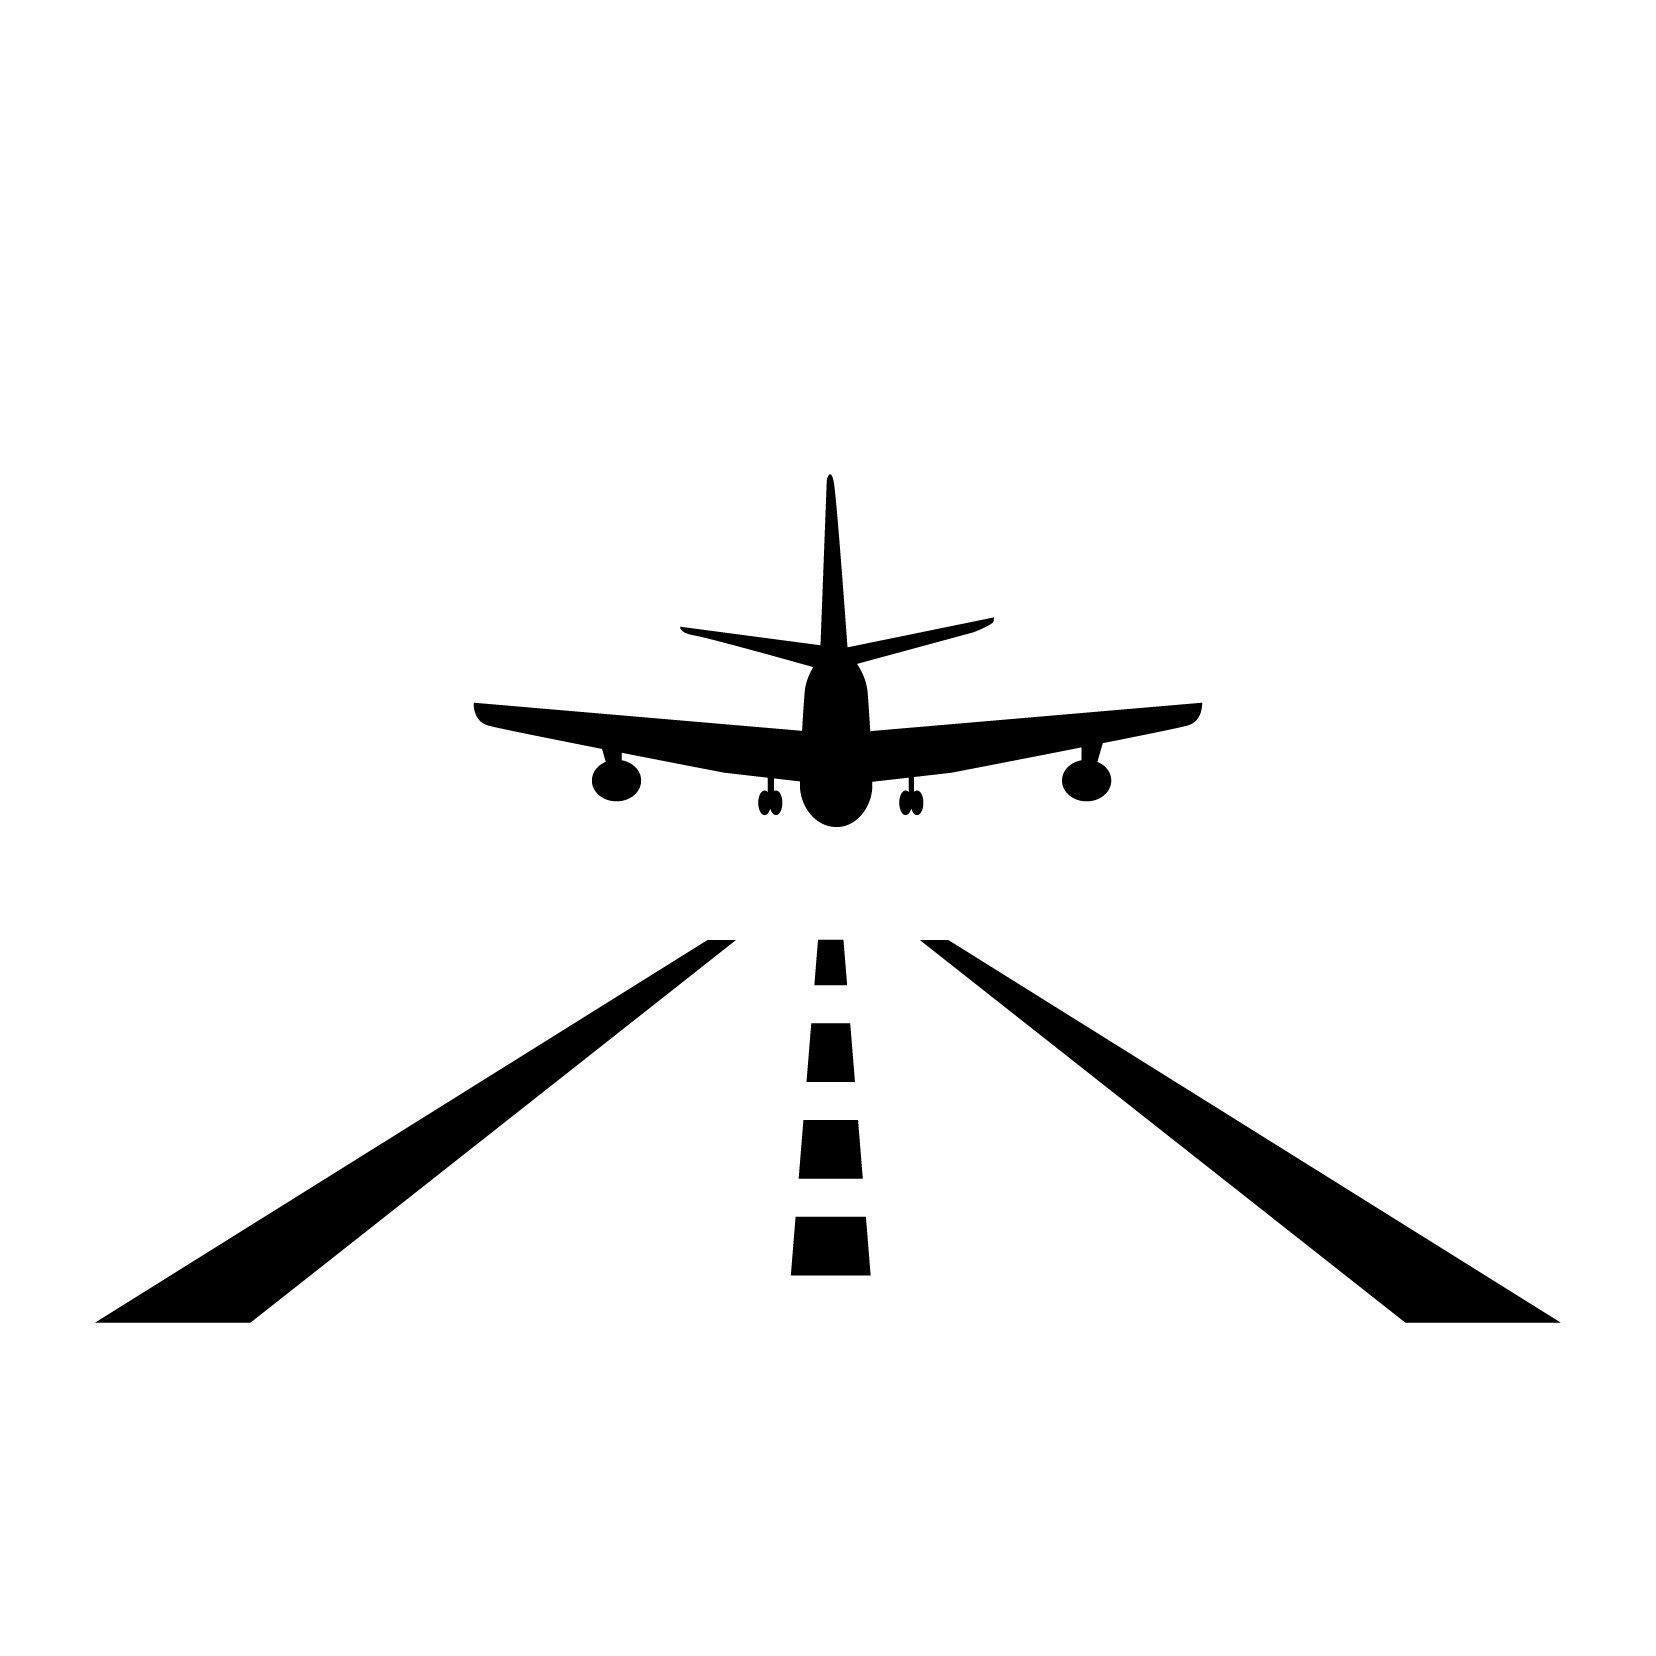 Airplane Aircraft Landing Strip Vinyl Wall Art Decal For Homes Offices Kids Rooms Nurseries Schools High Schools Colleges Universities Events Vinyl Wall Art Decals Vinyl Art Stickers Decal Wall Art [ 1656 x 1656 Pixel ]